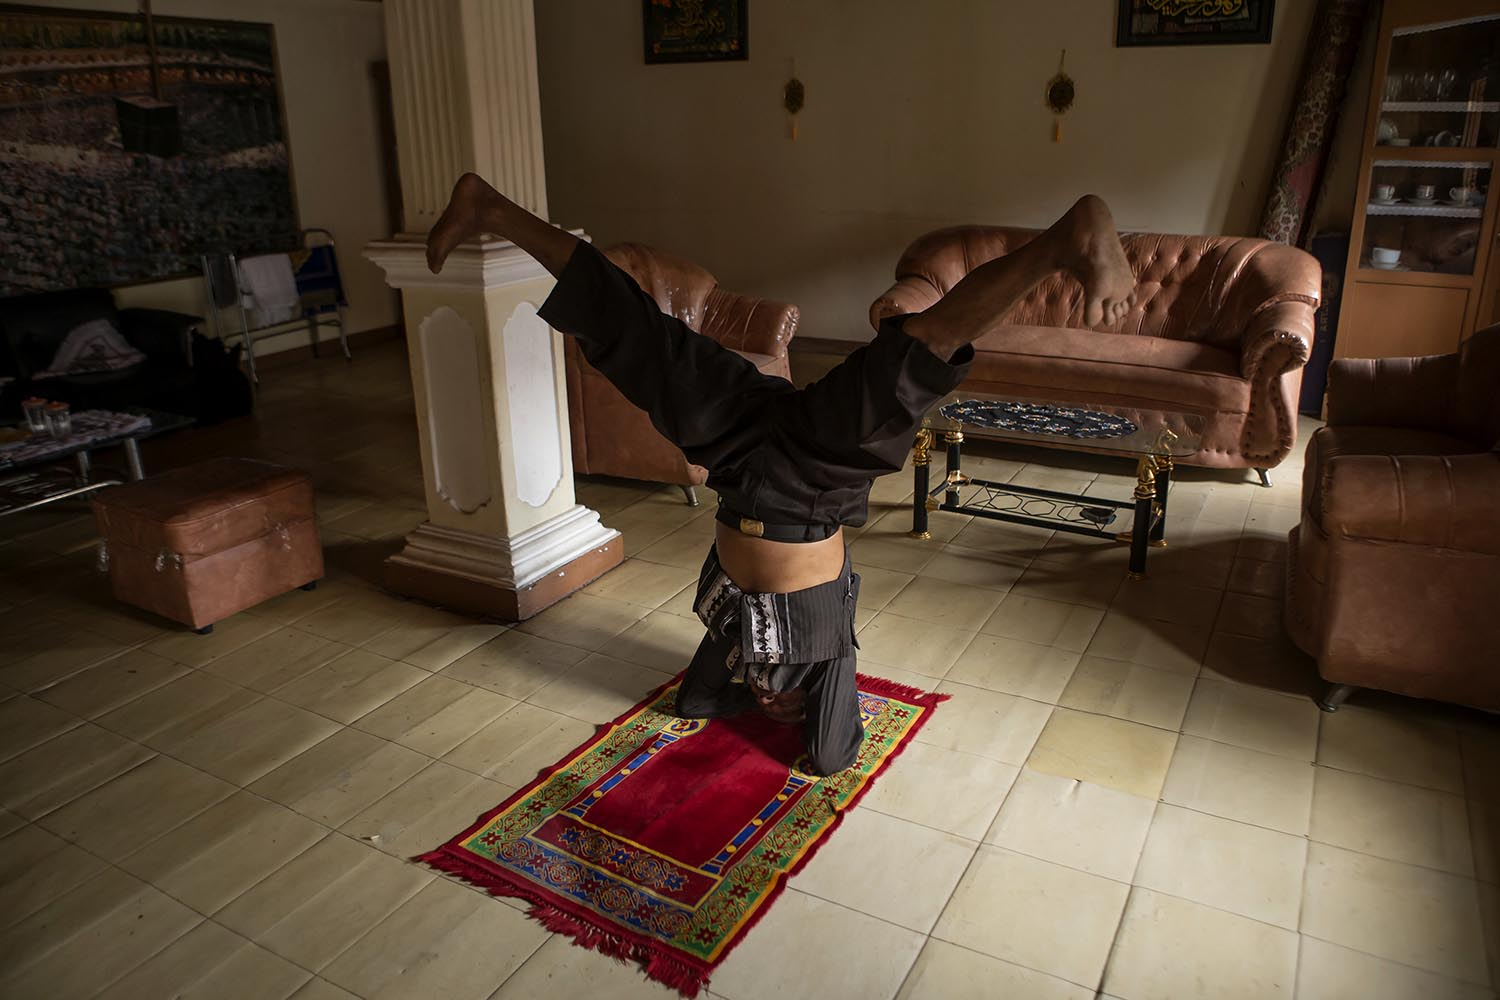 Practicing silat on sajadah (prayer mat) is considered an exercise to improve one's strength and balance. JP/Ramadhani